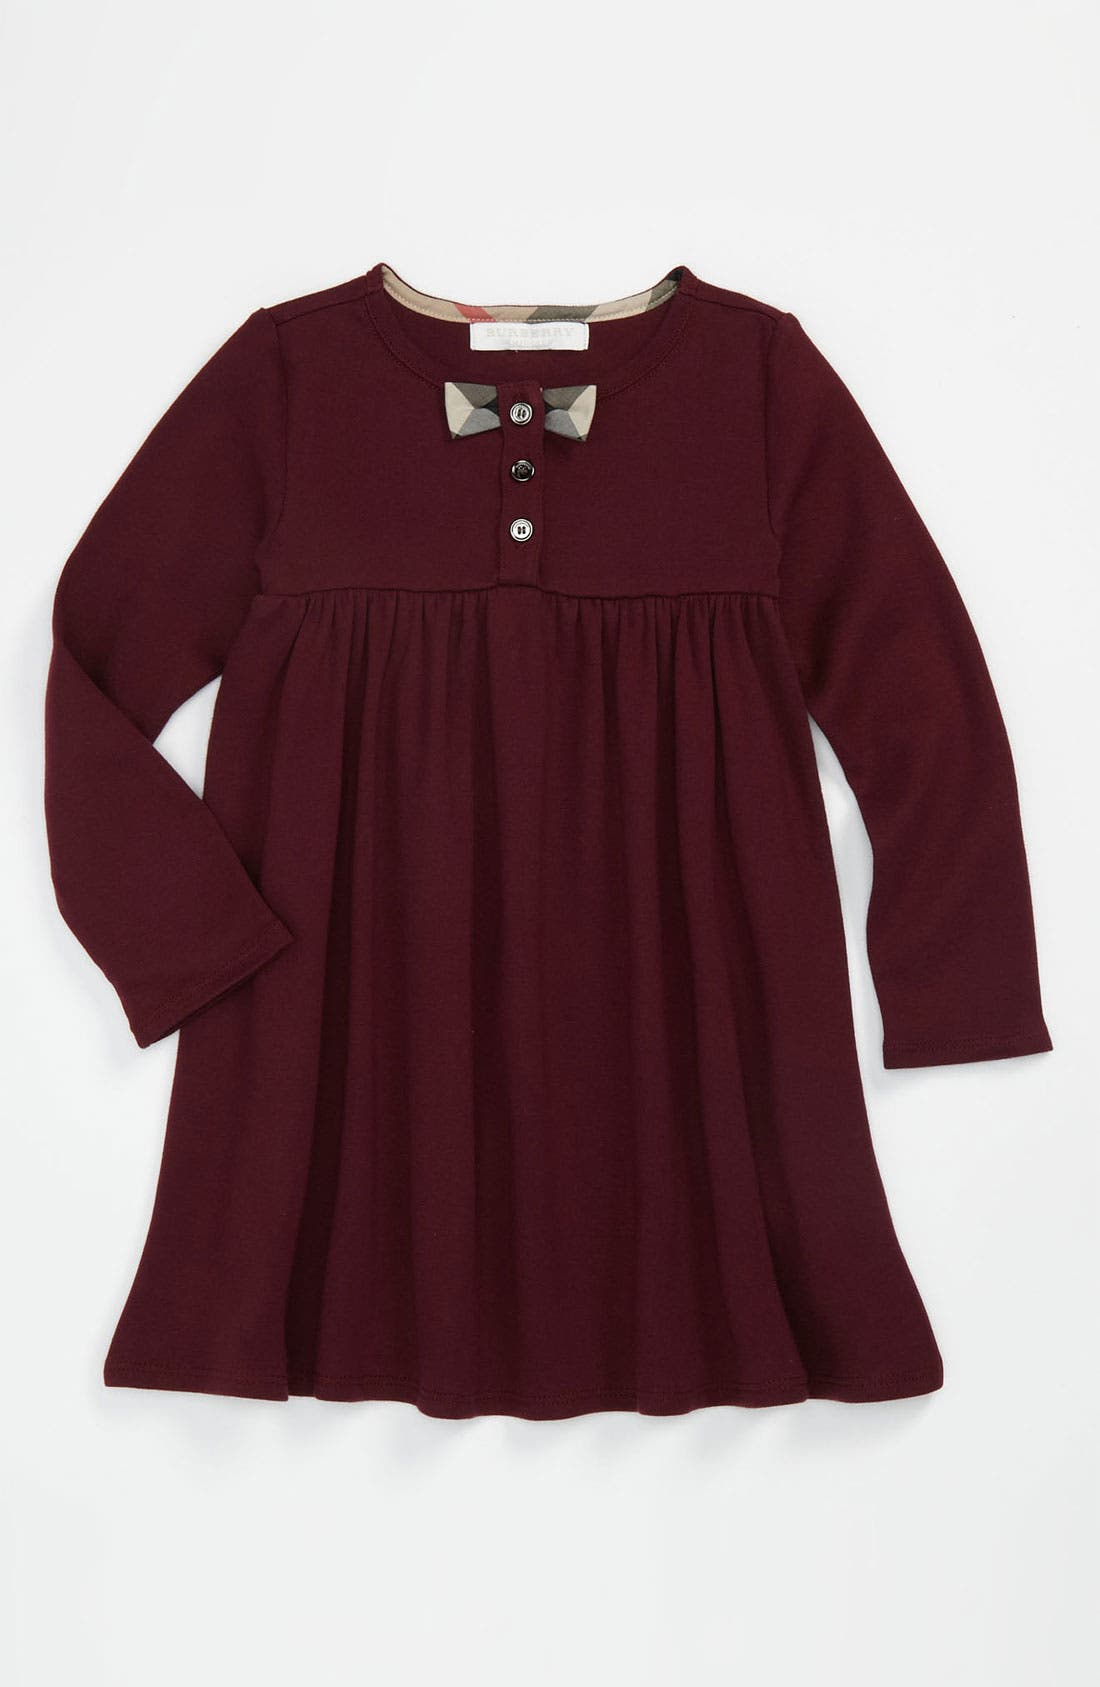 Main Image - Burberry Empire Waist Dress (Toddler)